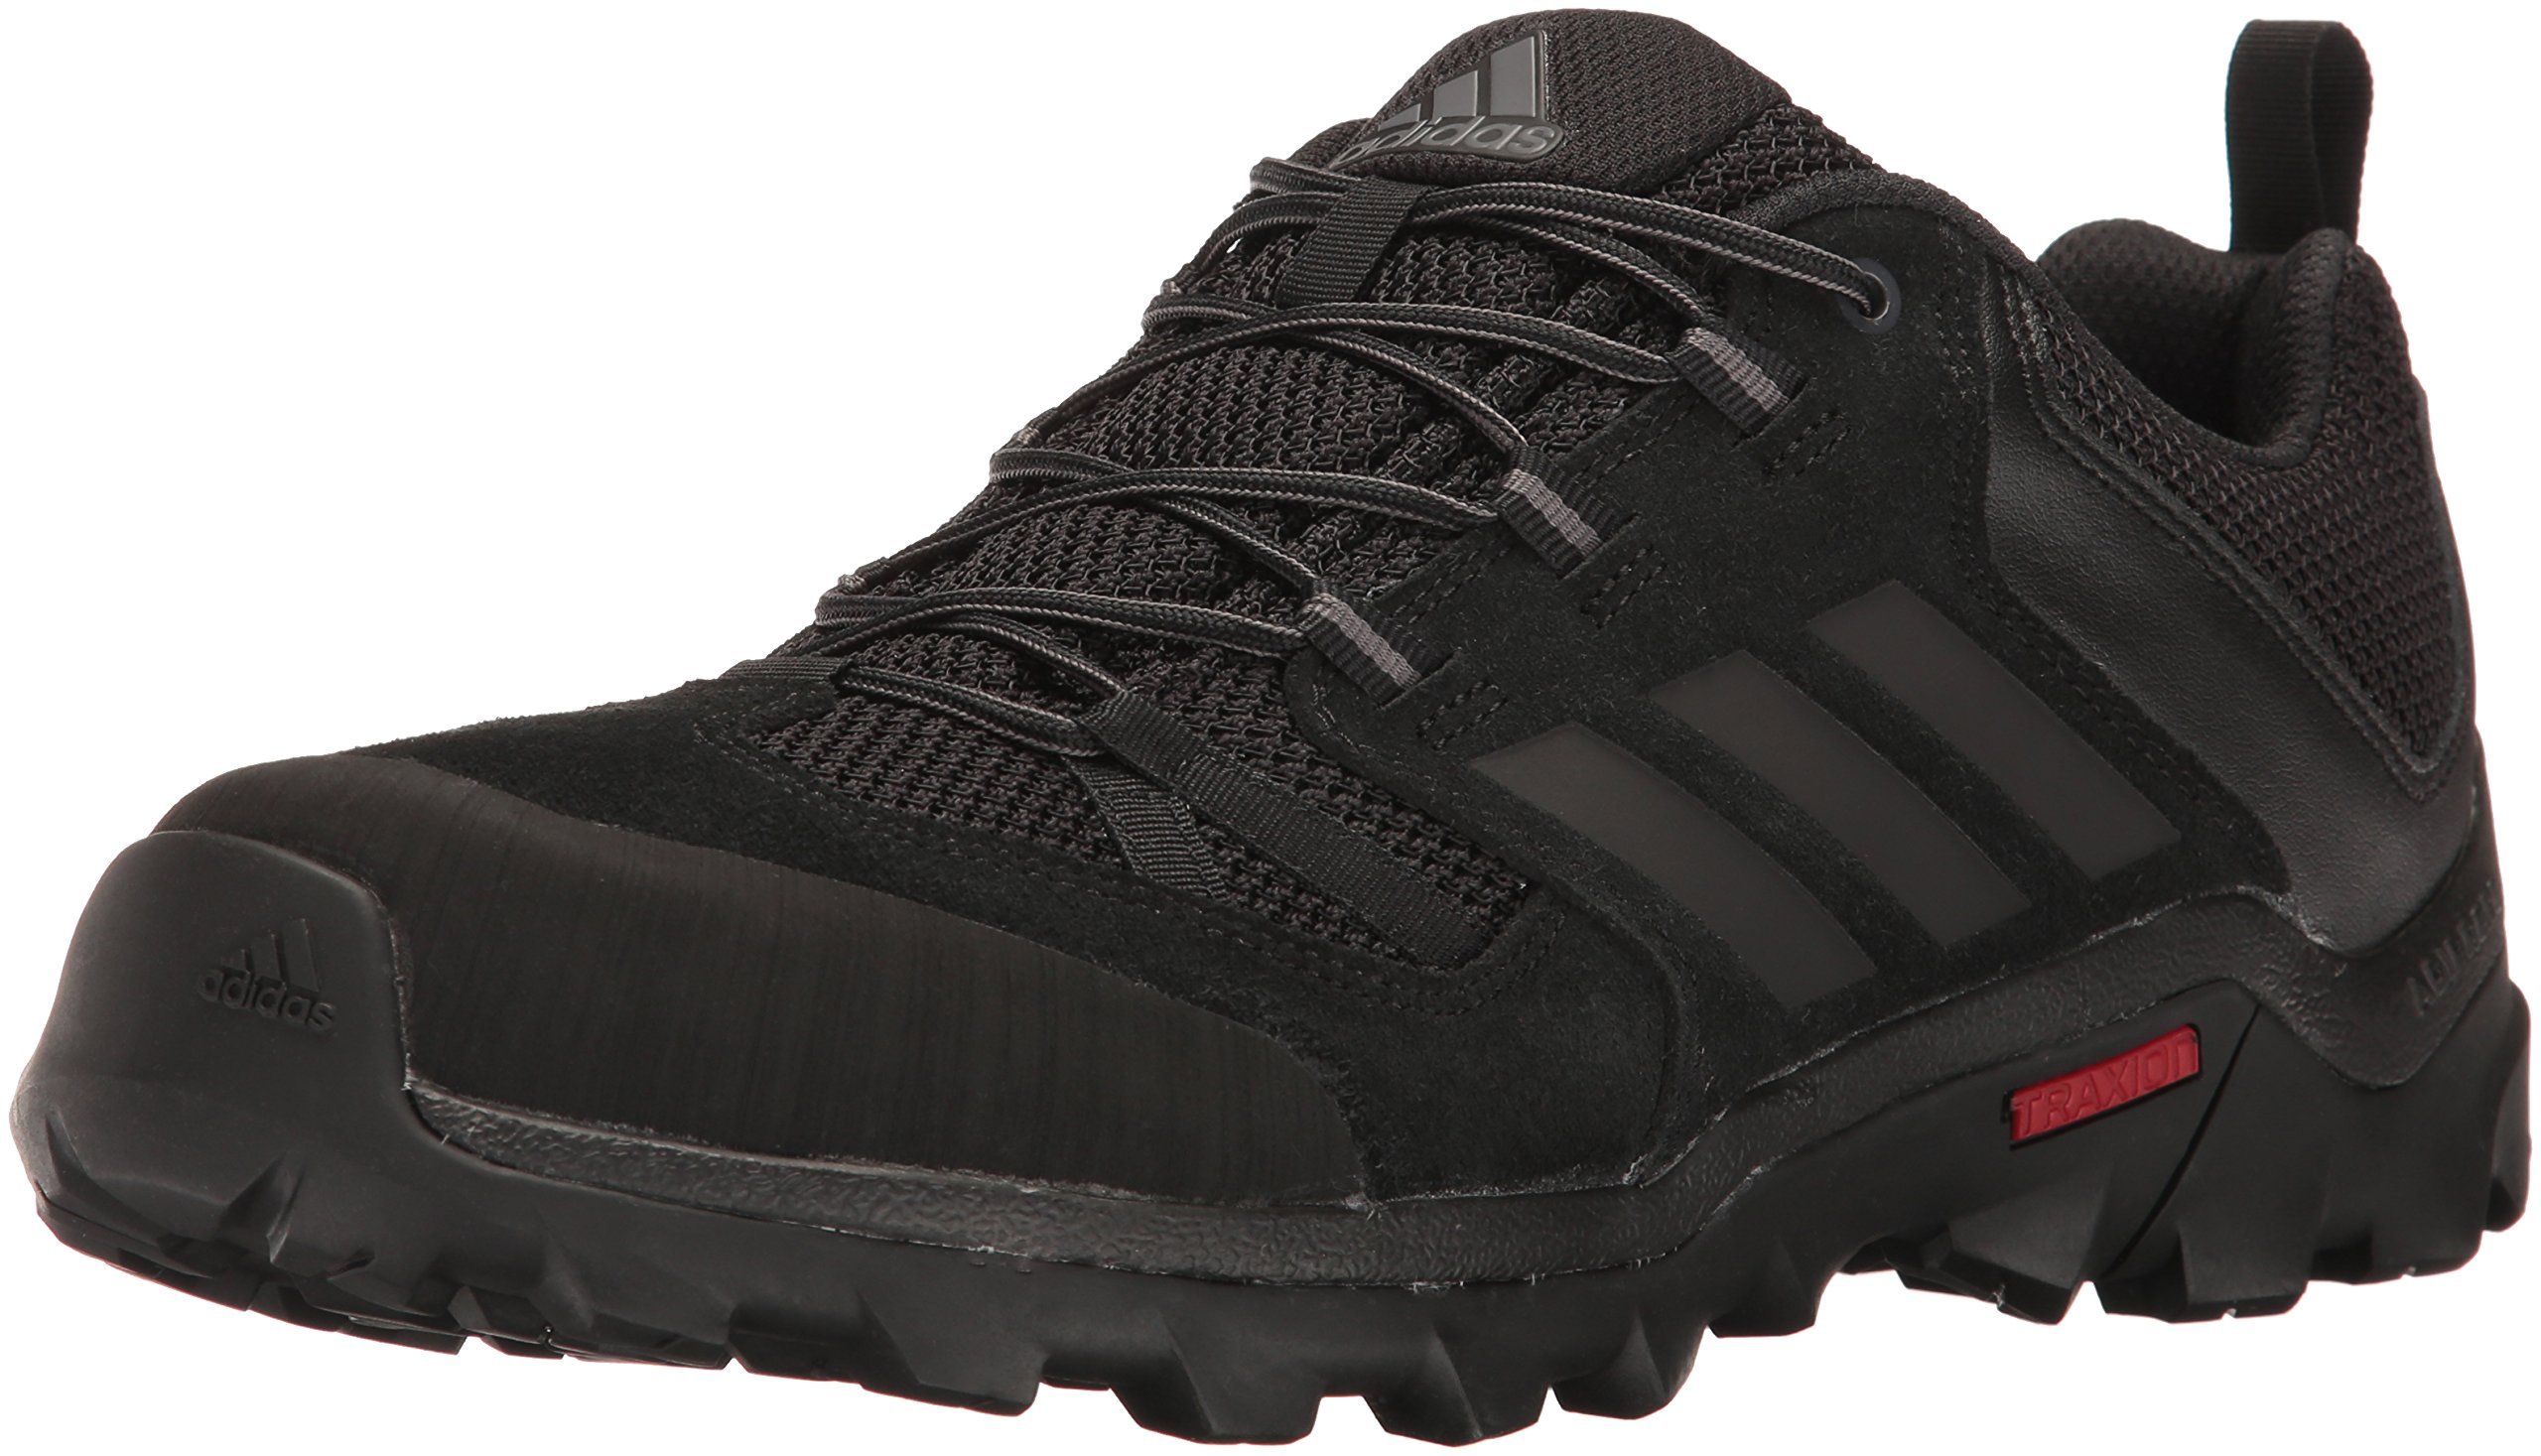 adidas outdoor Men's Caprock Hiking Shoe, Black/Granite/Night Met, 10.5 M US